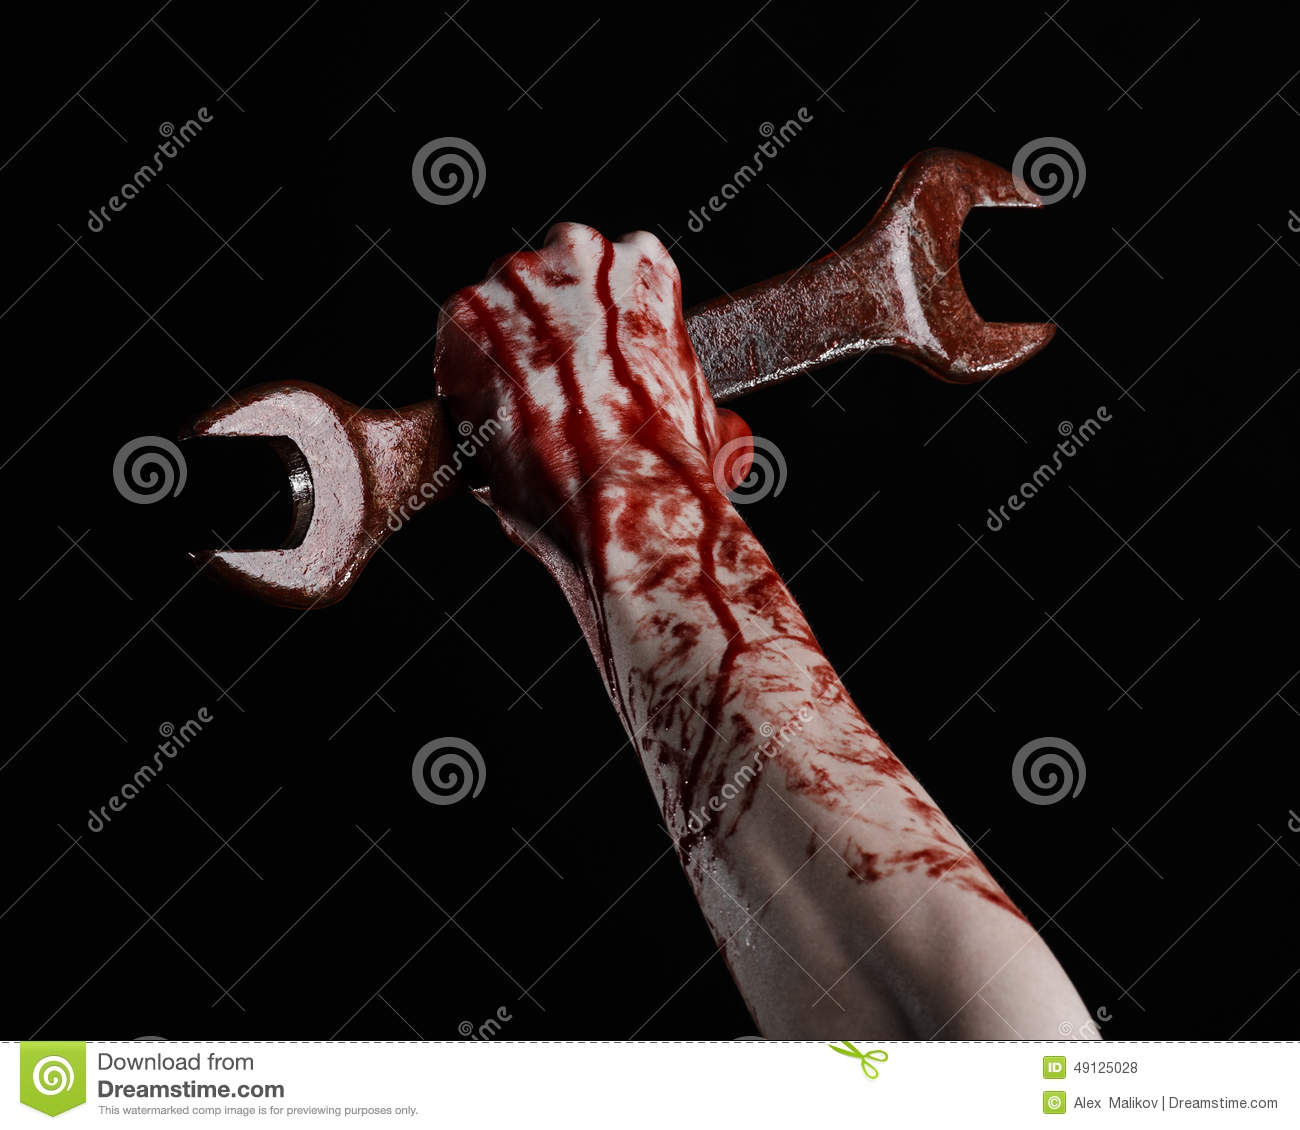 bloody hand holding - photo #39